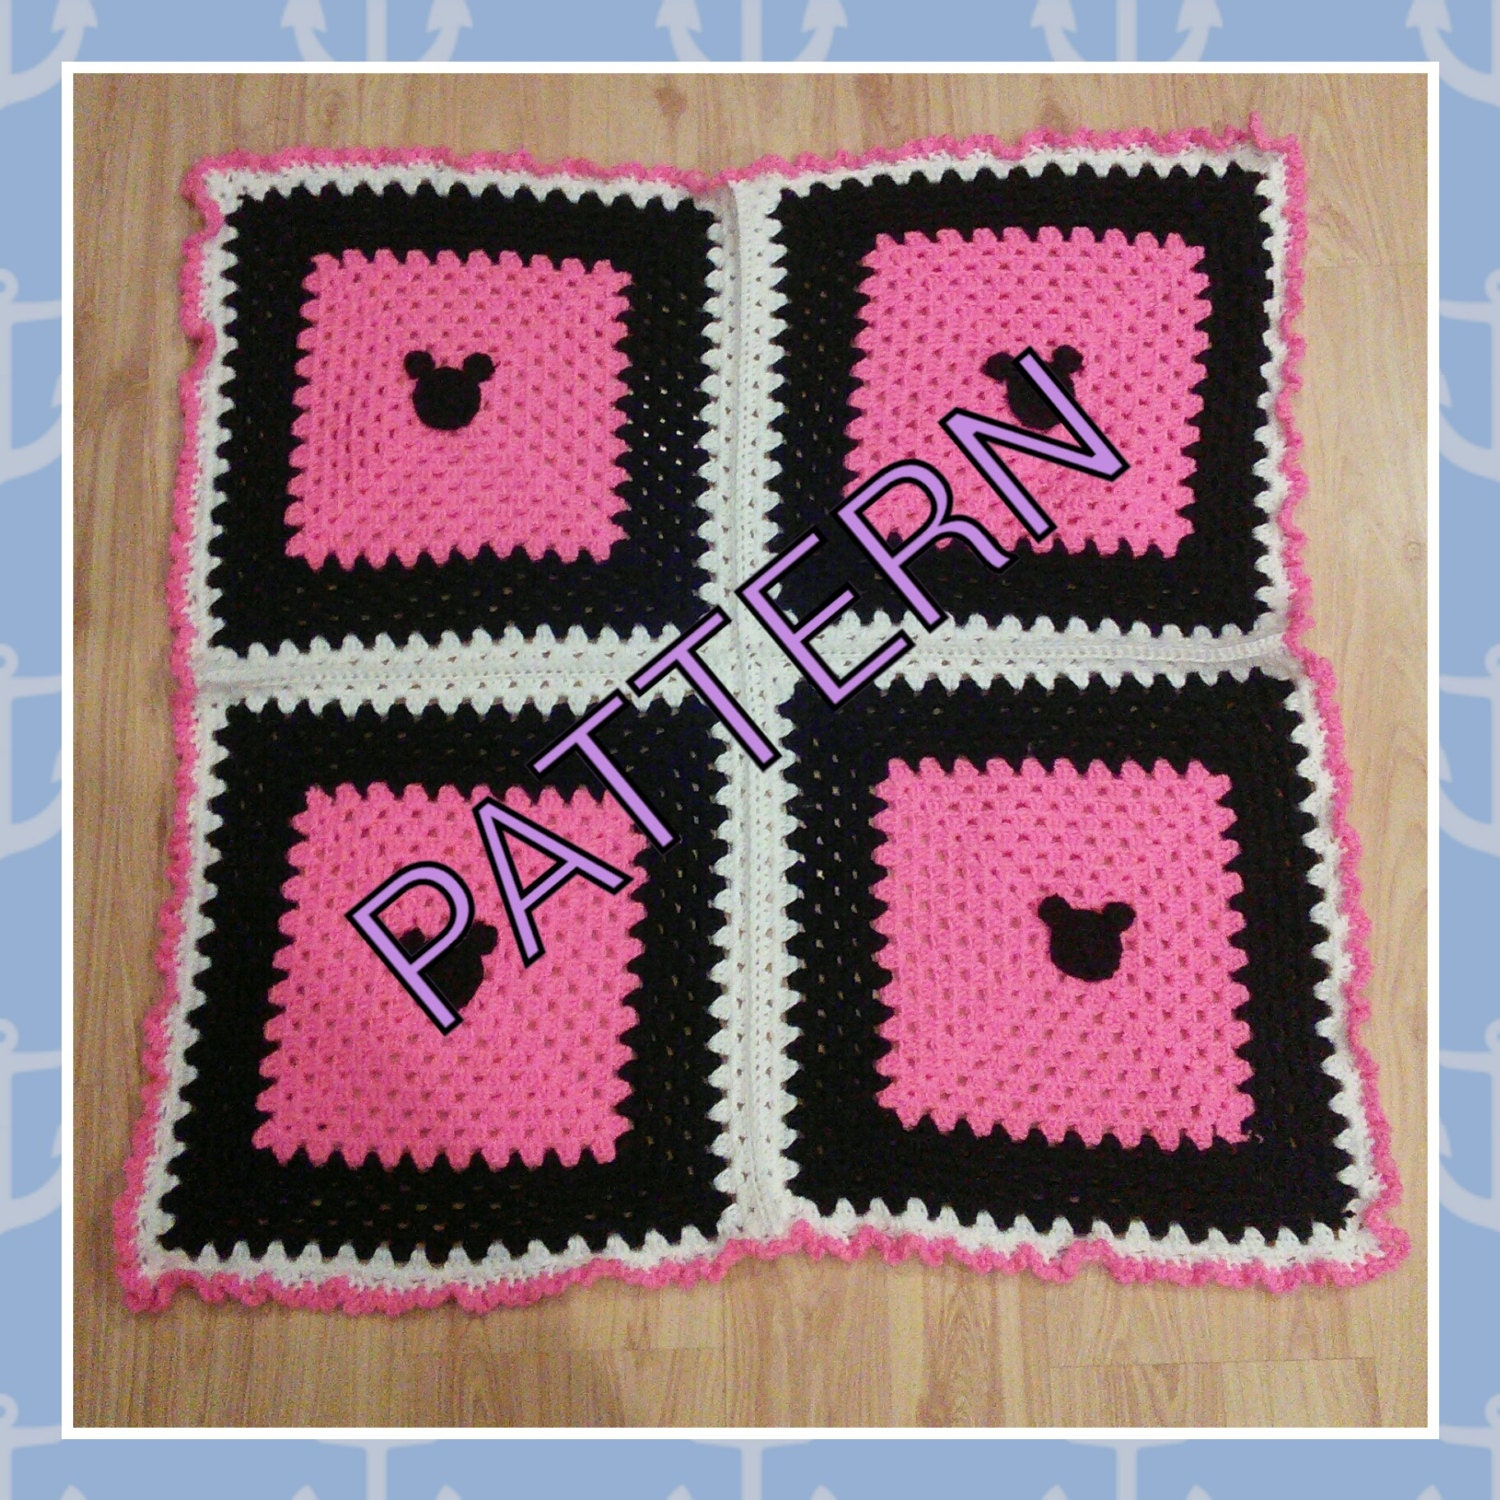 Crochet Pattern For Minnie Mouse Blanket : Pink Black White Minnie Mickey Mouse baby afghan crochet